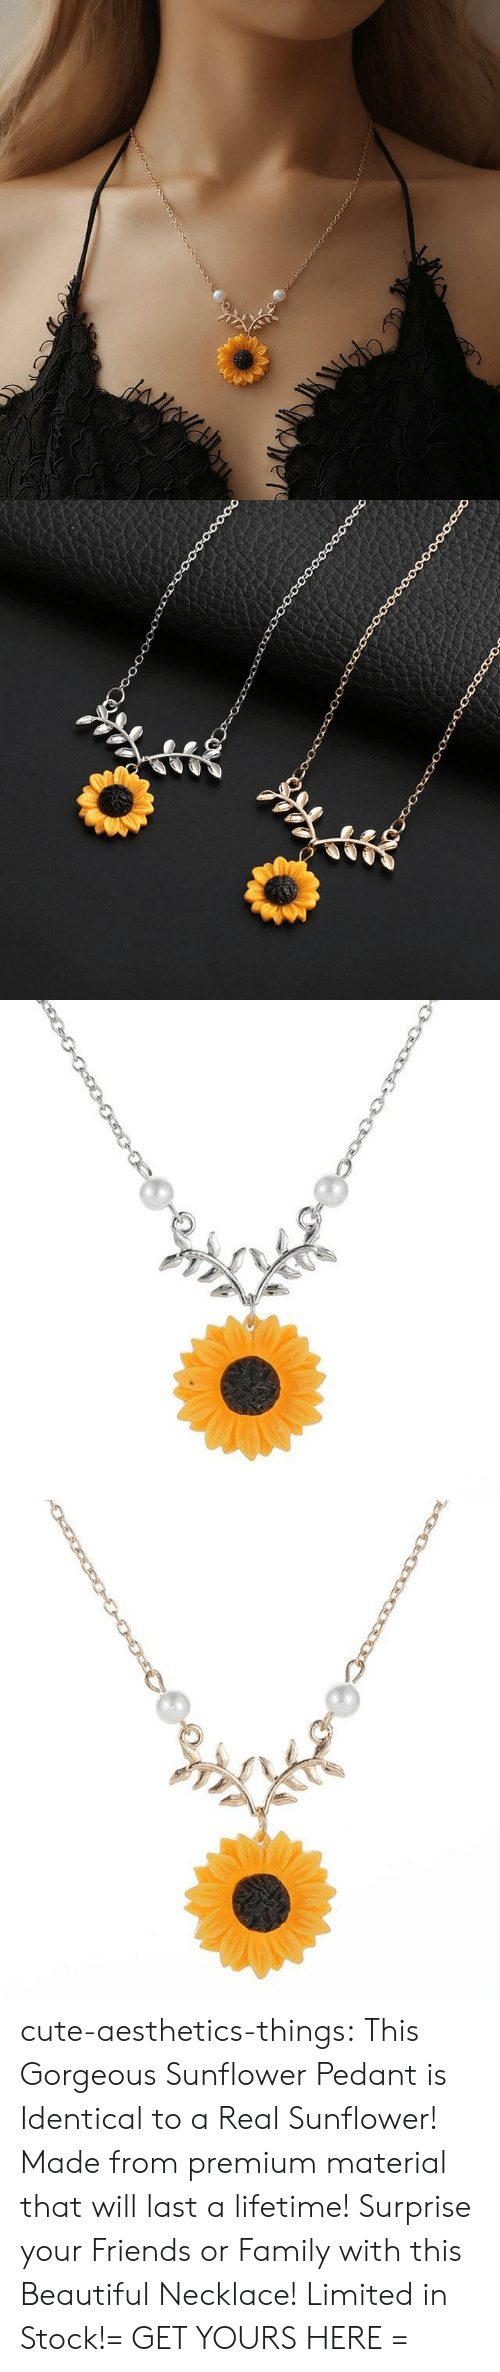 Pedant: cute-aesthetics-things:  This Gorgeous Sunflower Pedant is Identical to a Real Sunflower! Made from premium material that will last a lifetime! Surprise your Friends or Family with this Beautiful Necklace! Limited in Stock!= GET YOURS HERE =